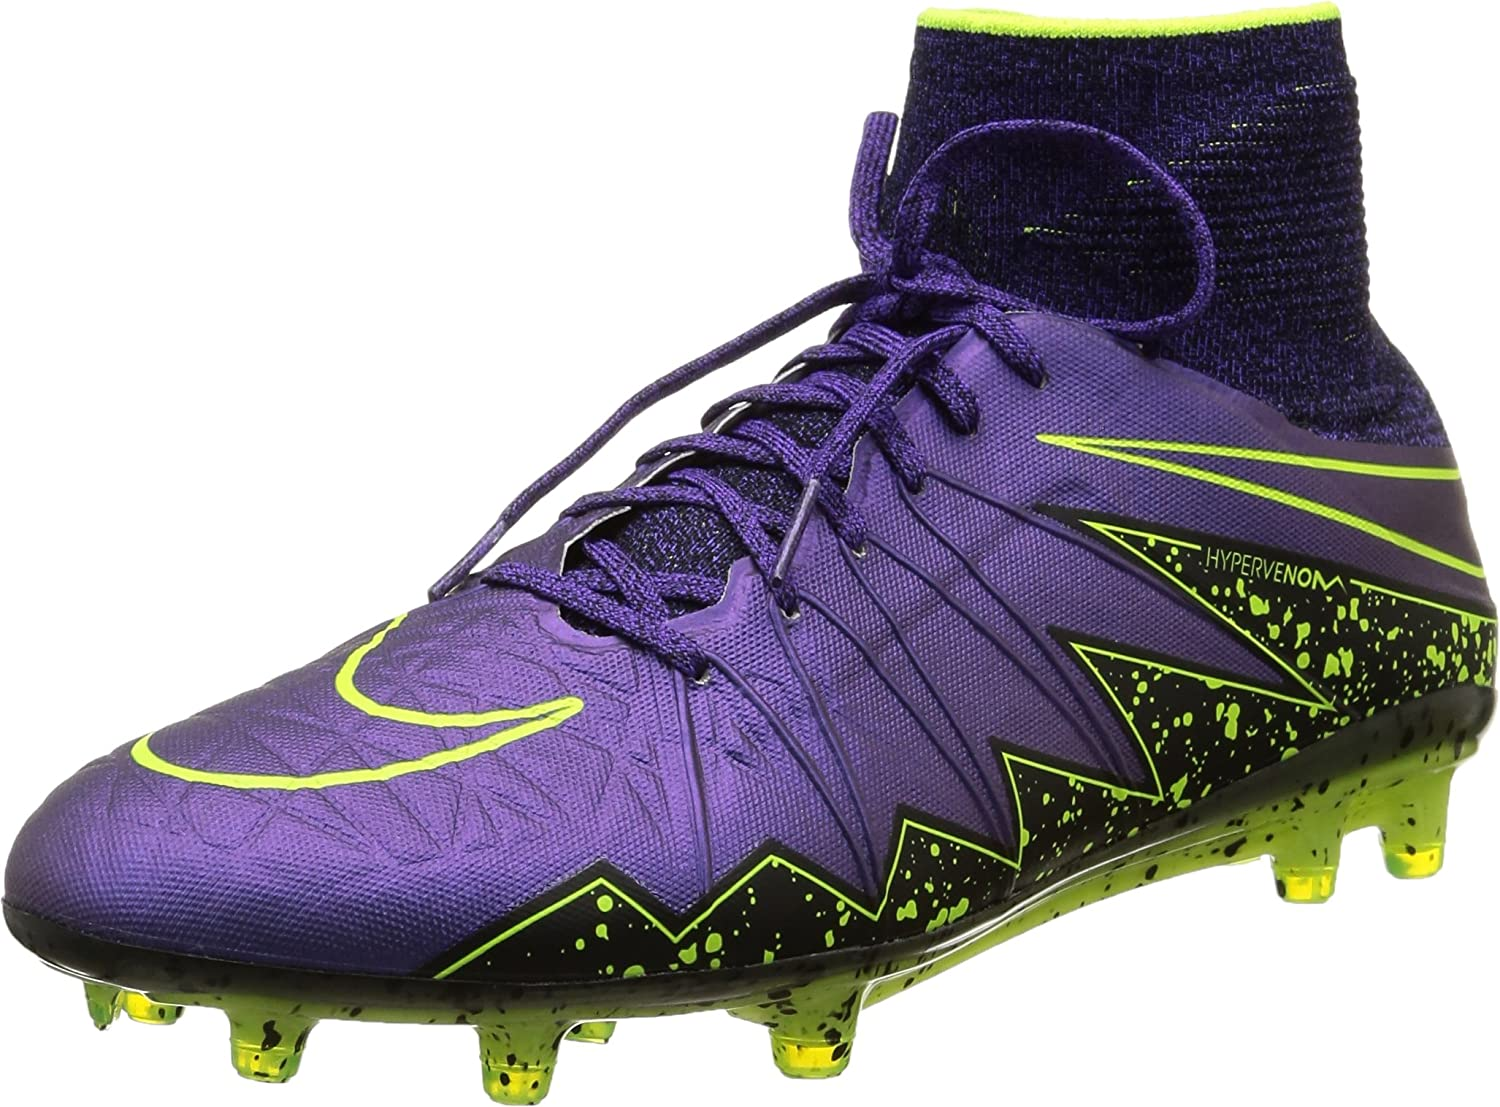 new concept 7845b 97078 NIKE Hypervenom Phantom II Firm Ground-Hyper Grape/Black/Hyper Grape